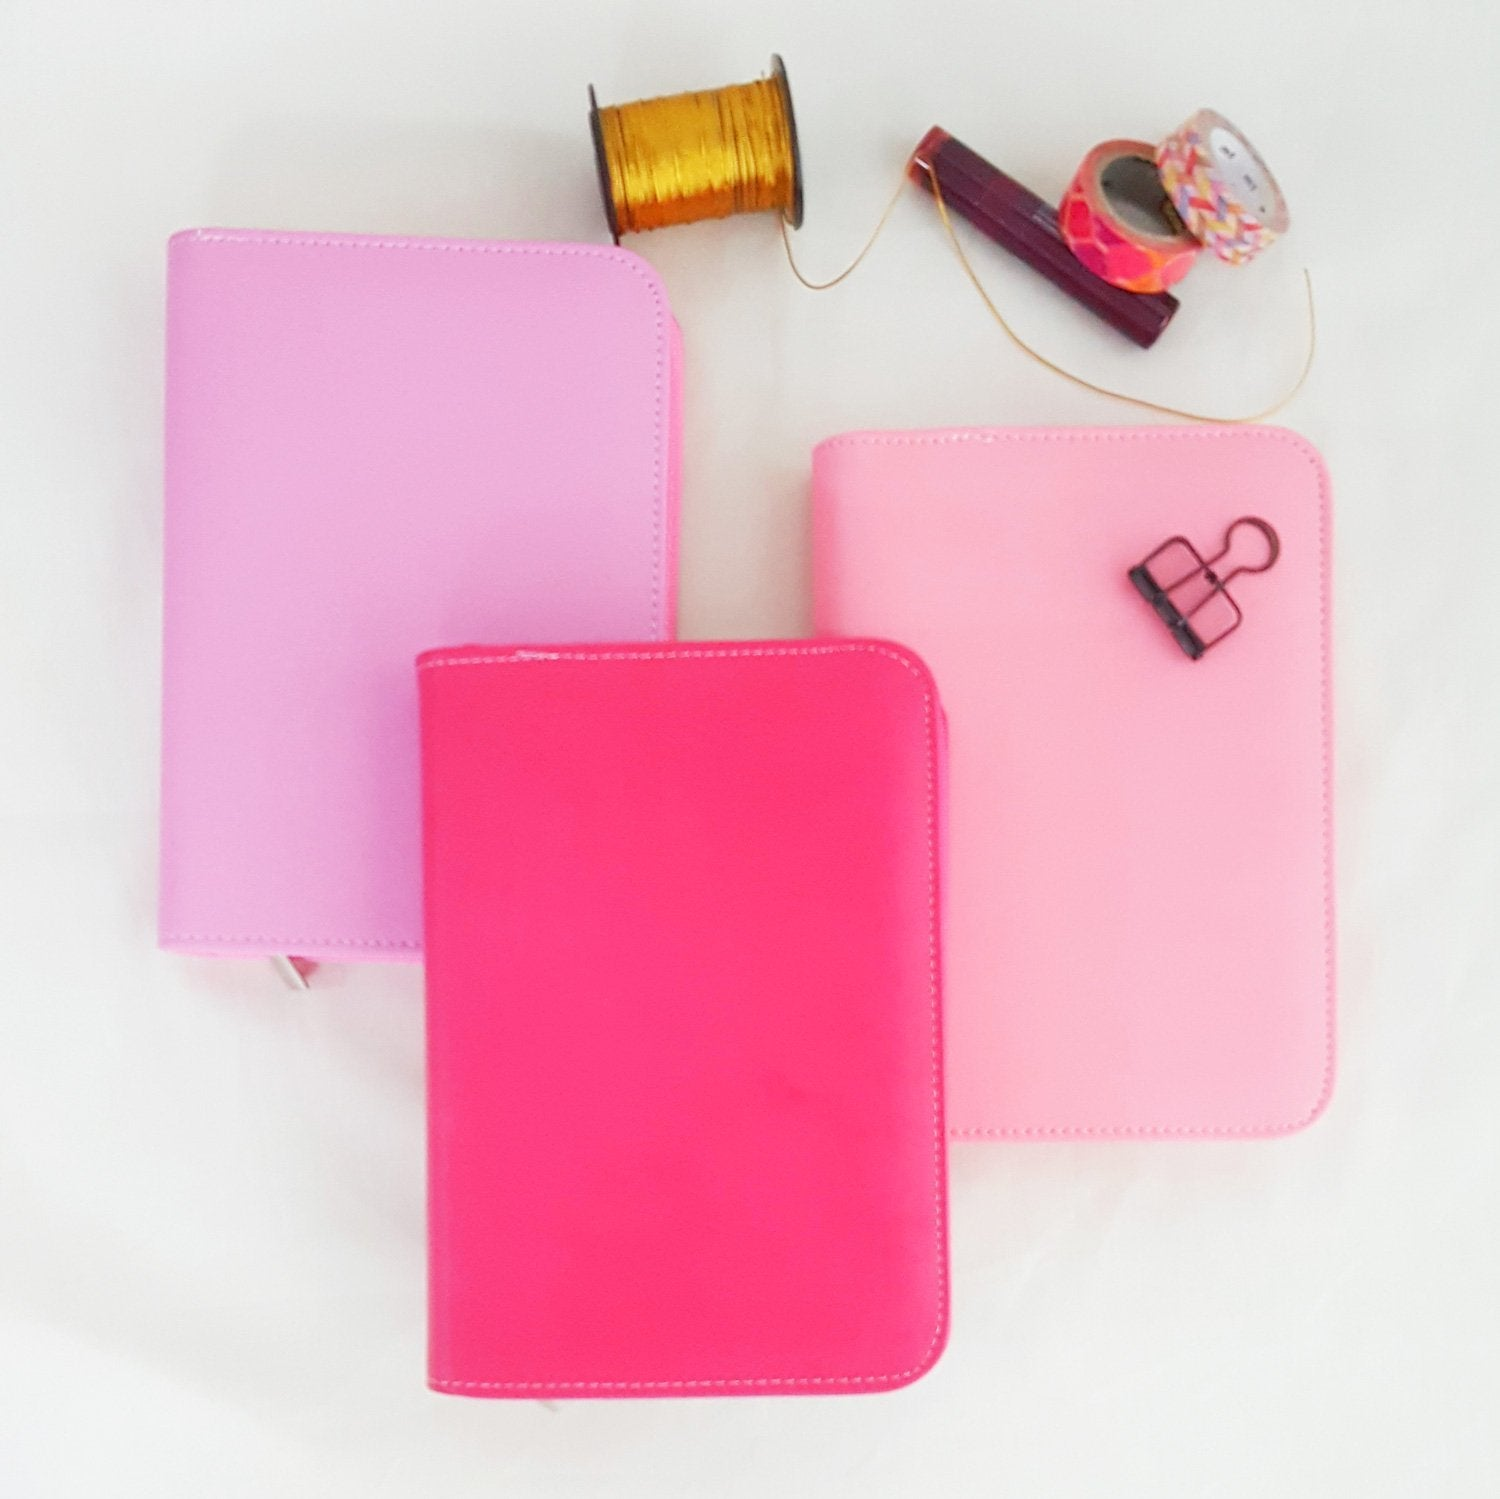 Pink Lady PU leather A6 Zipper Planner - Happiness Idea